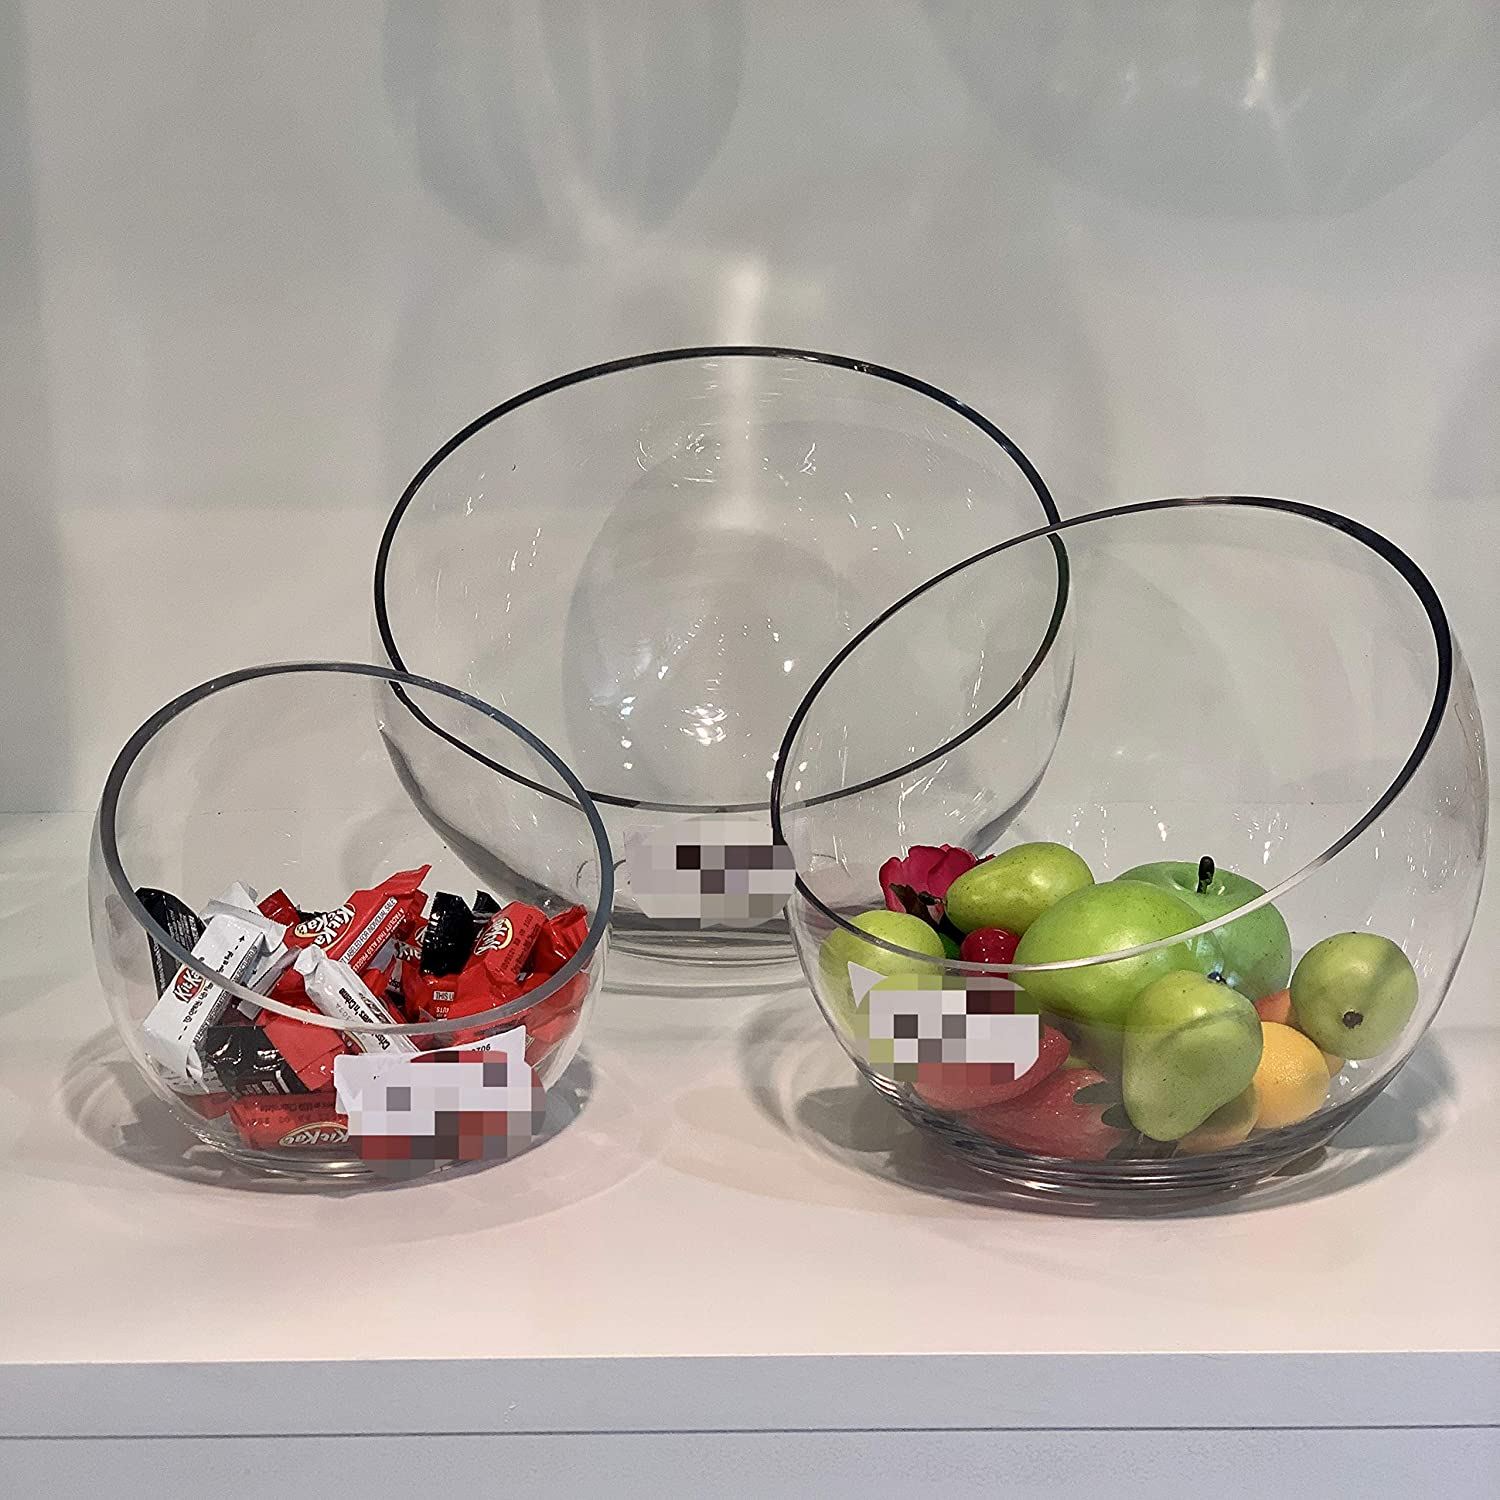 Height 5.5 Candy Dish Fruit Jar Floral Container for Wedding Party Event WGV Slant Cut Bowl Glass Vase Clear Terrarium Diameter 5.7 Open 3.3 1 Piece Home Office Decor